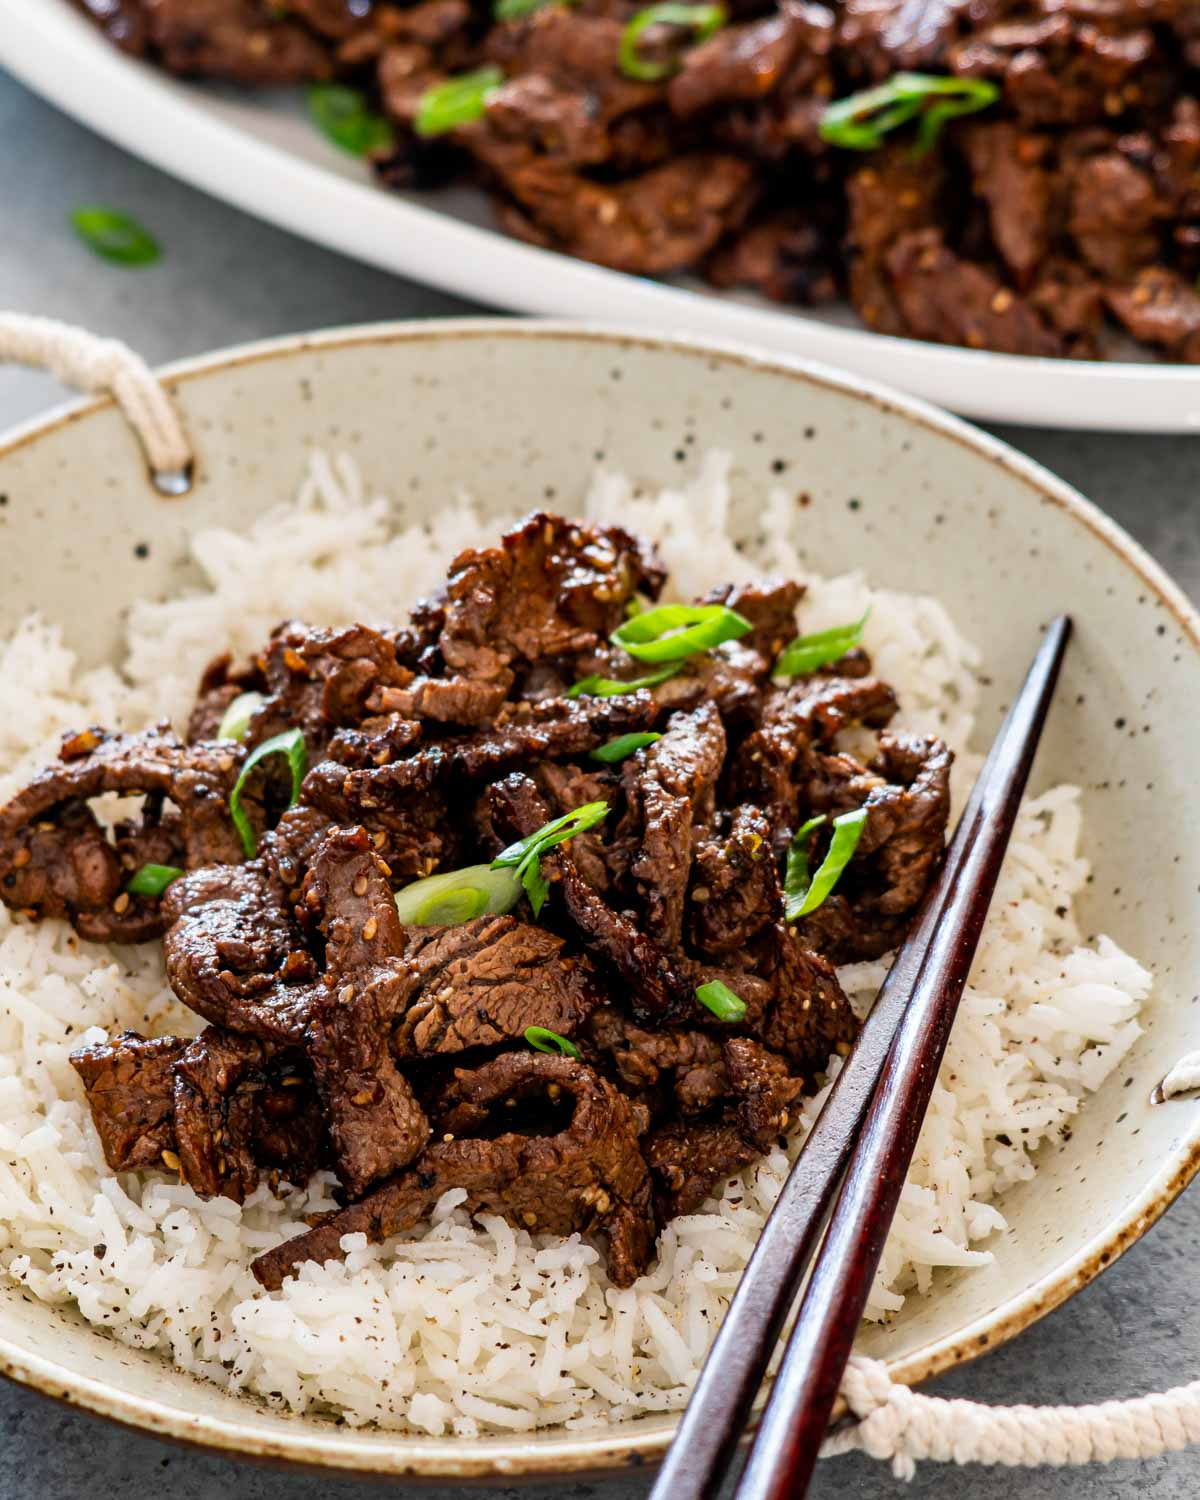 beef bulgogi over a bed of rice garnished with green onions.